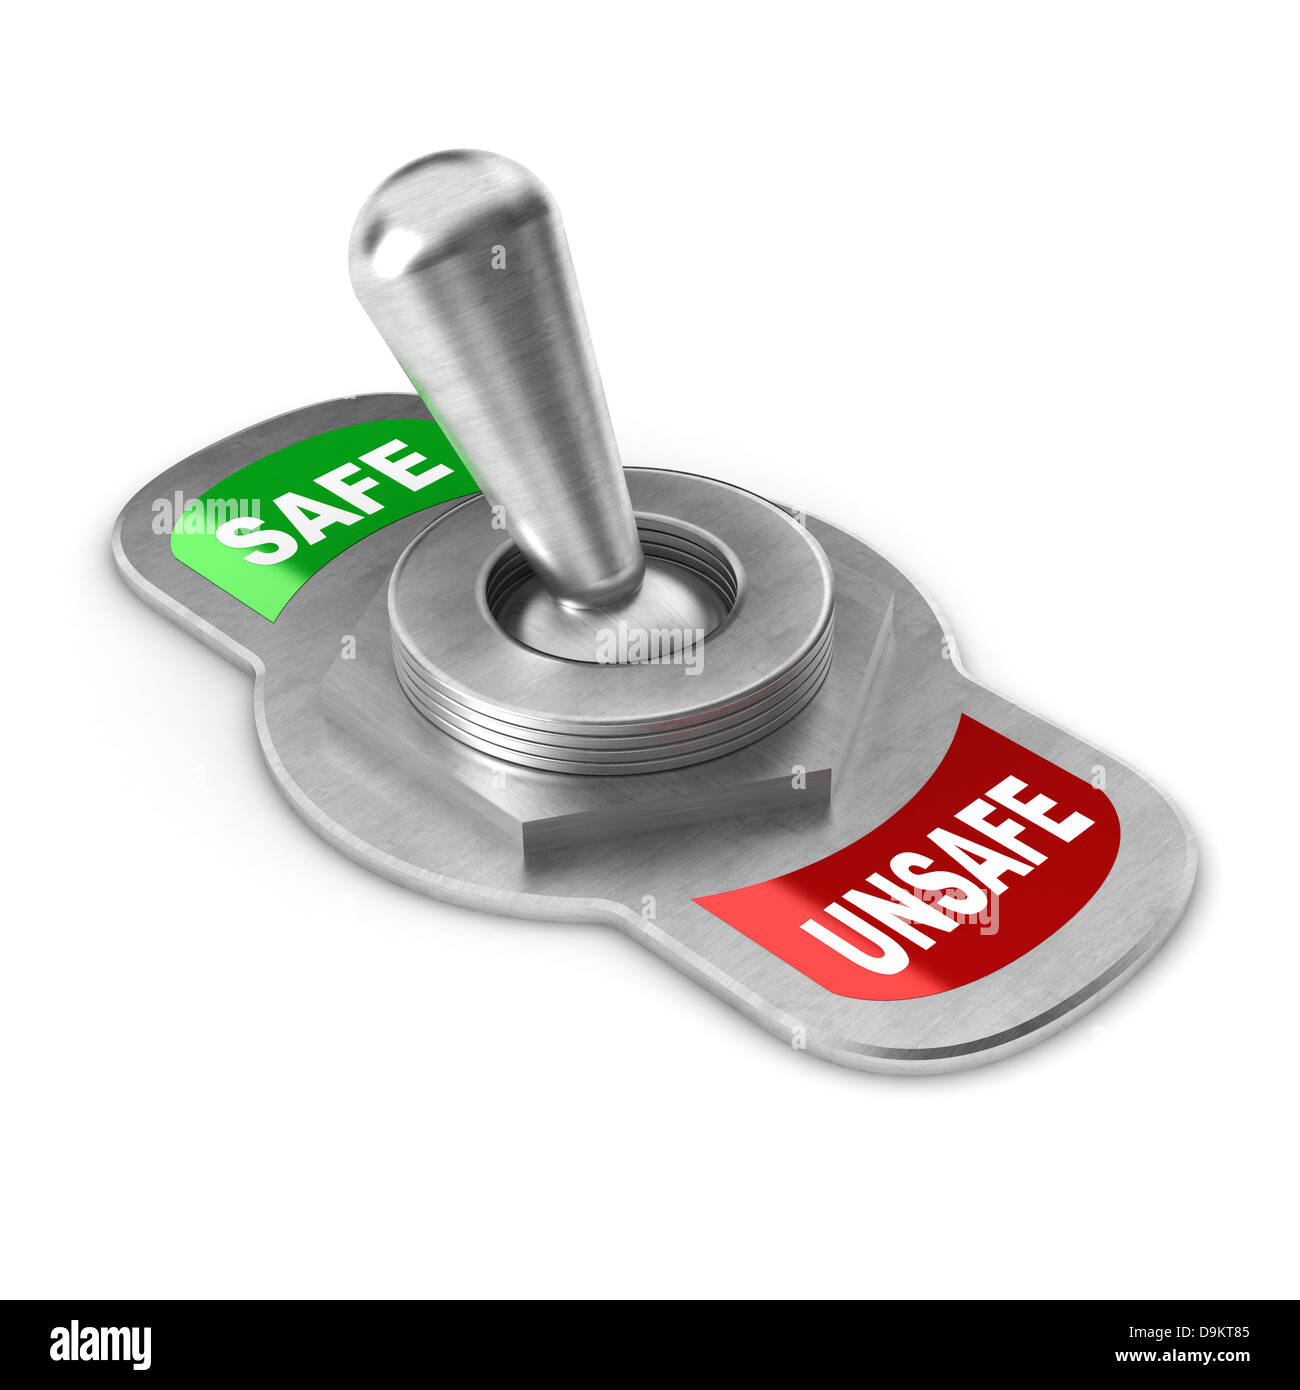 A Colourful 3d Rendered Safe vs Unsafe Concept Switch - Stock Image